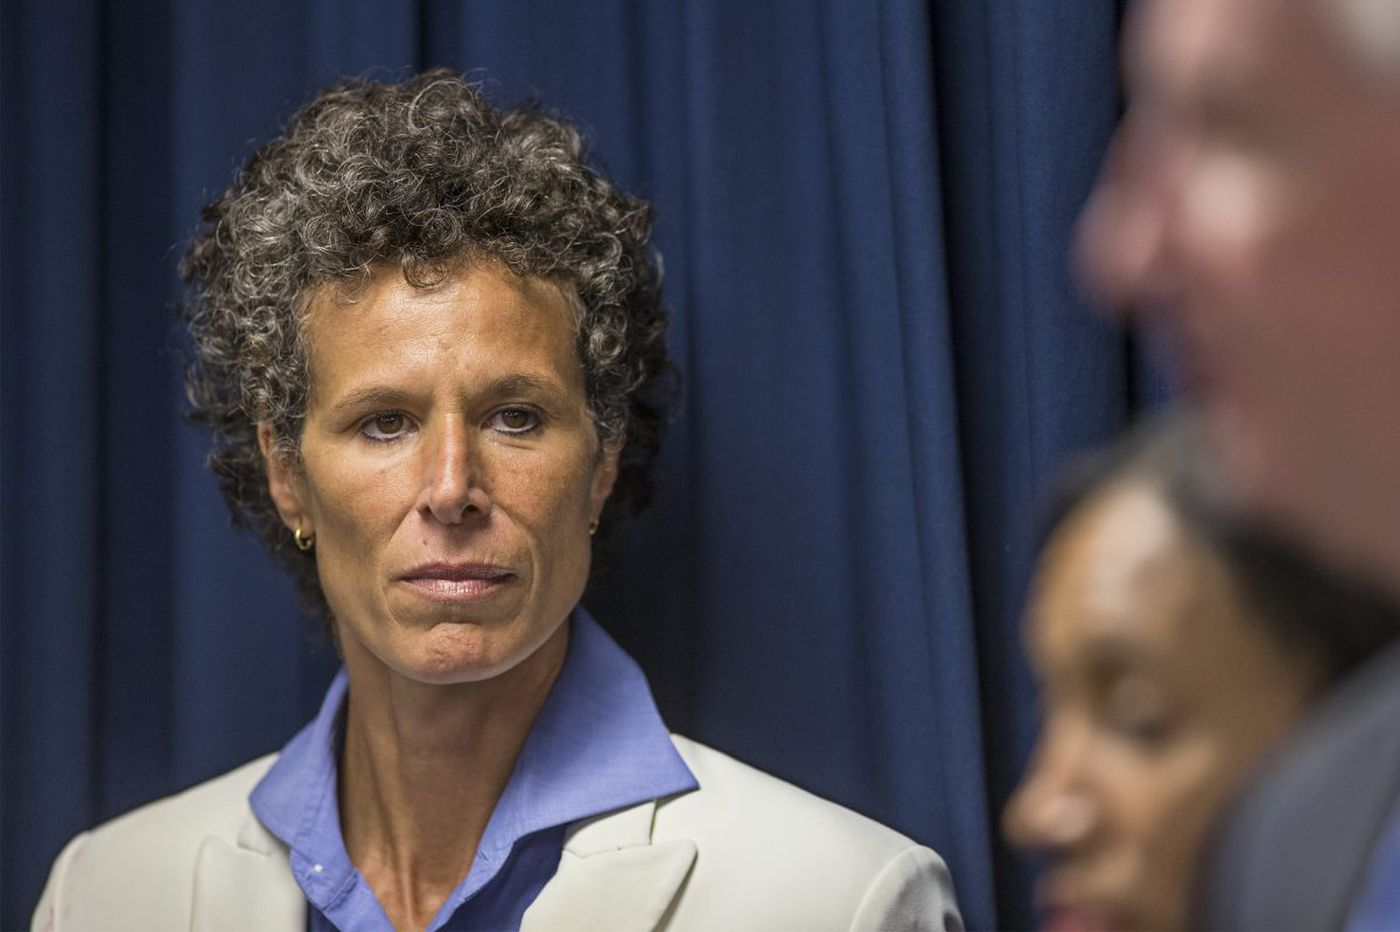 Report: NBC to air interview with Cosby accuser Andrea Constand